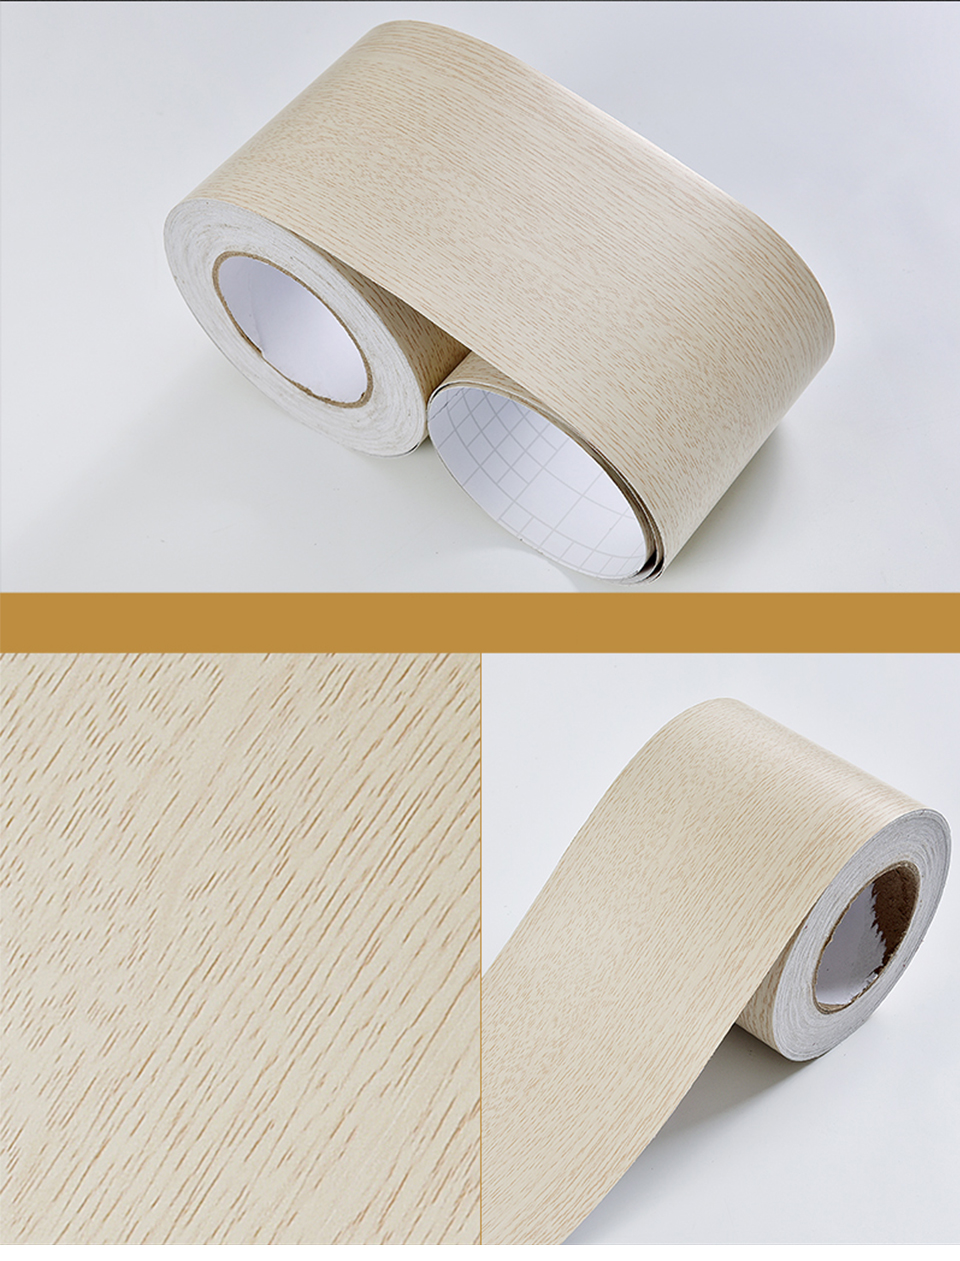 Wood Self Adhesive Window Decal Living Room Floor Border Skirting Contact Paper Waterproof Waist Line Wallpaper Home Improvement H5f93eb039b9842e7a946a5b8ed708814T